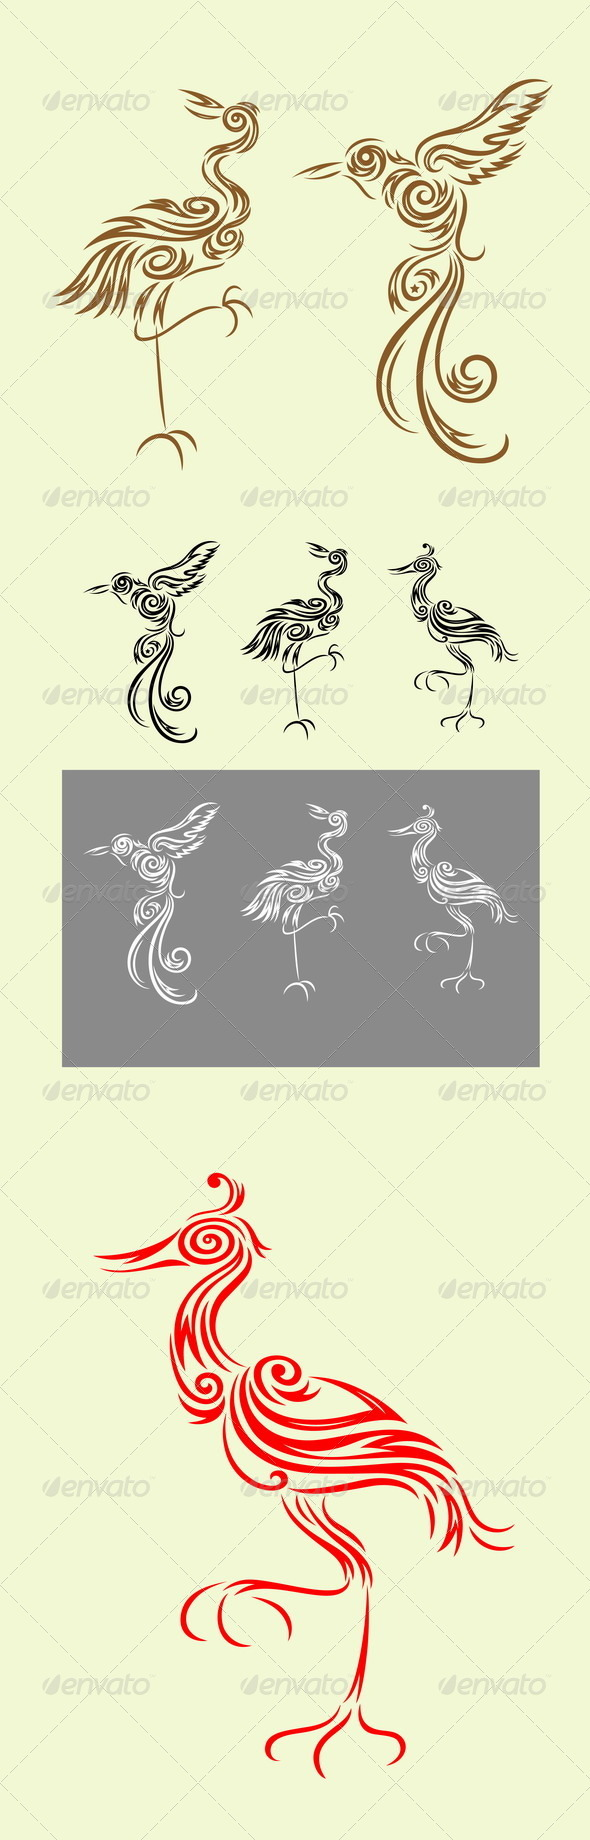 GraphicRiver Heron and Friends 8370531